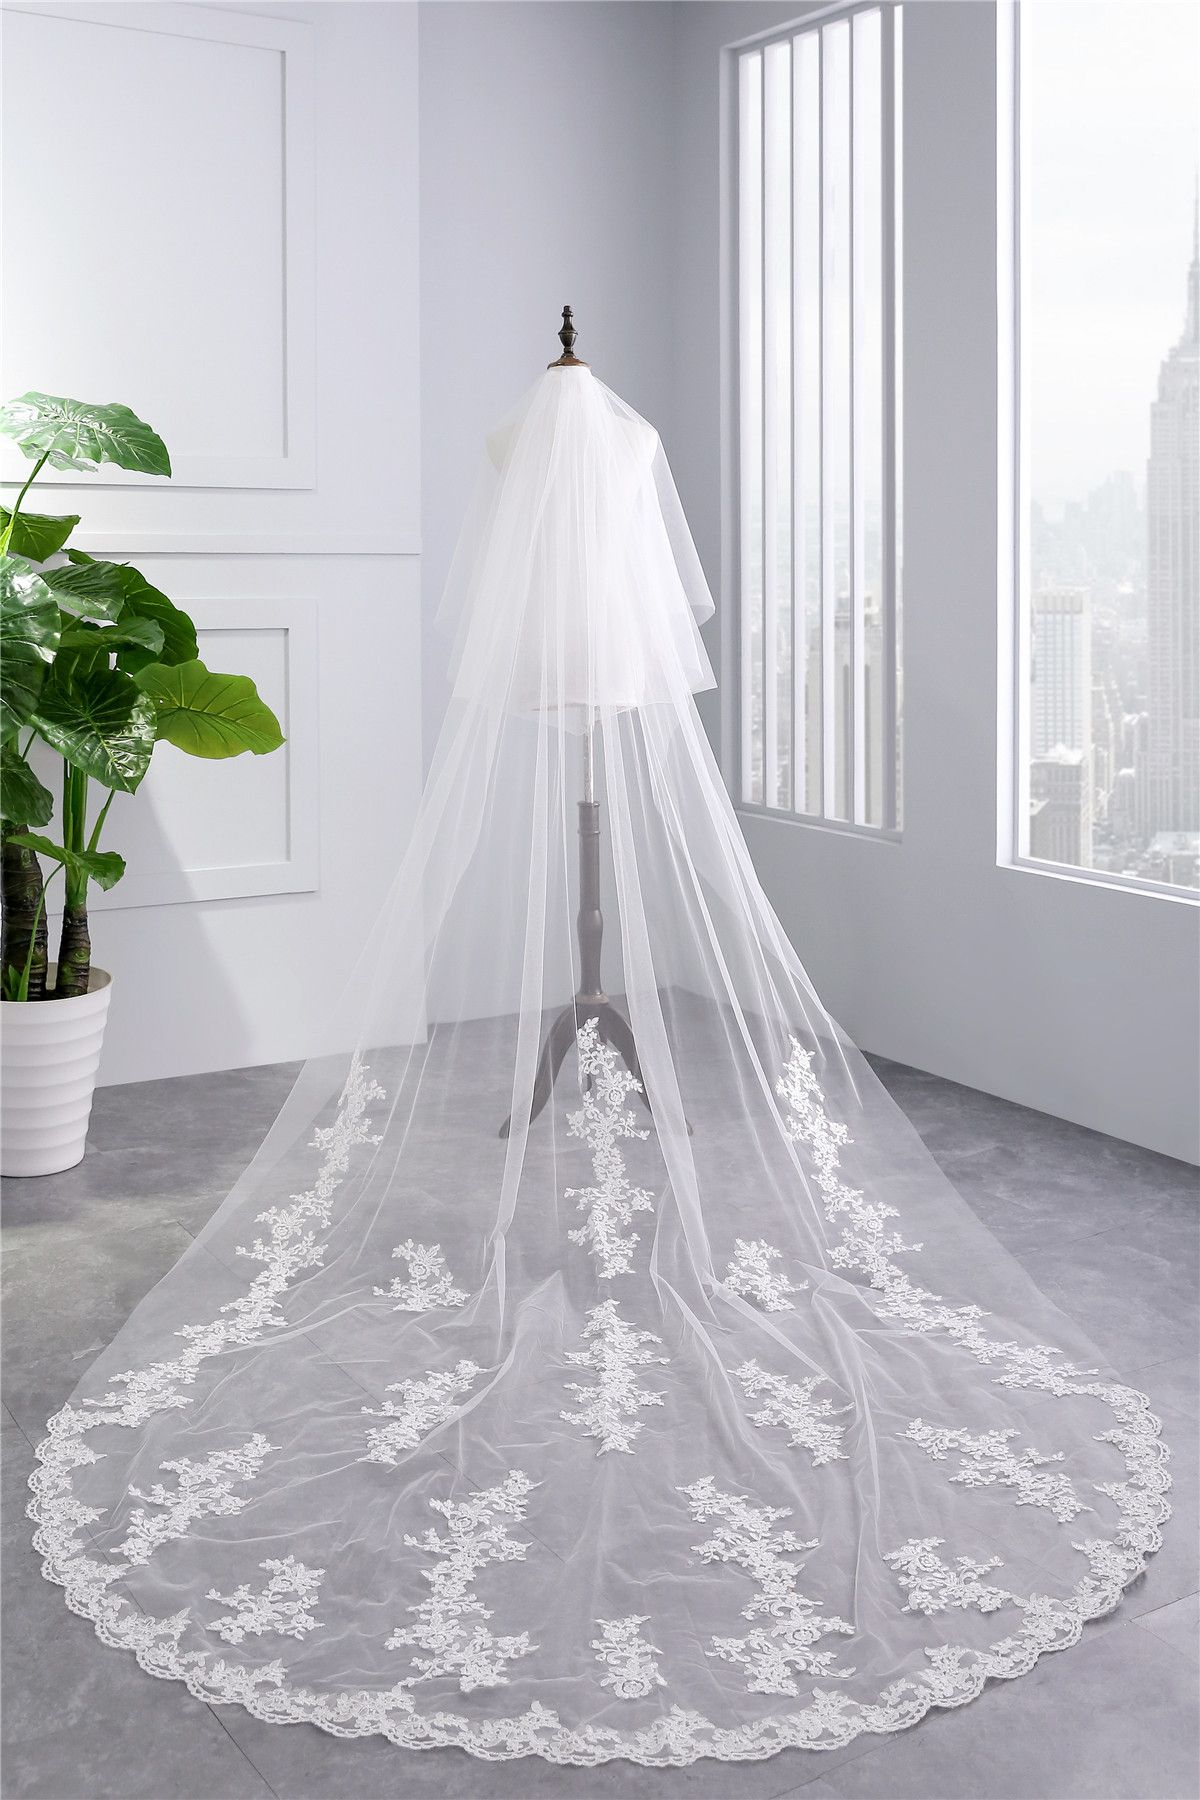 Cathedral Tulle Lace Wedding Veil Bridal Veil from